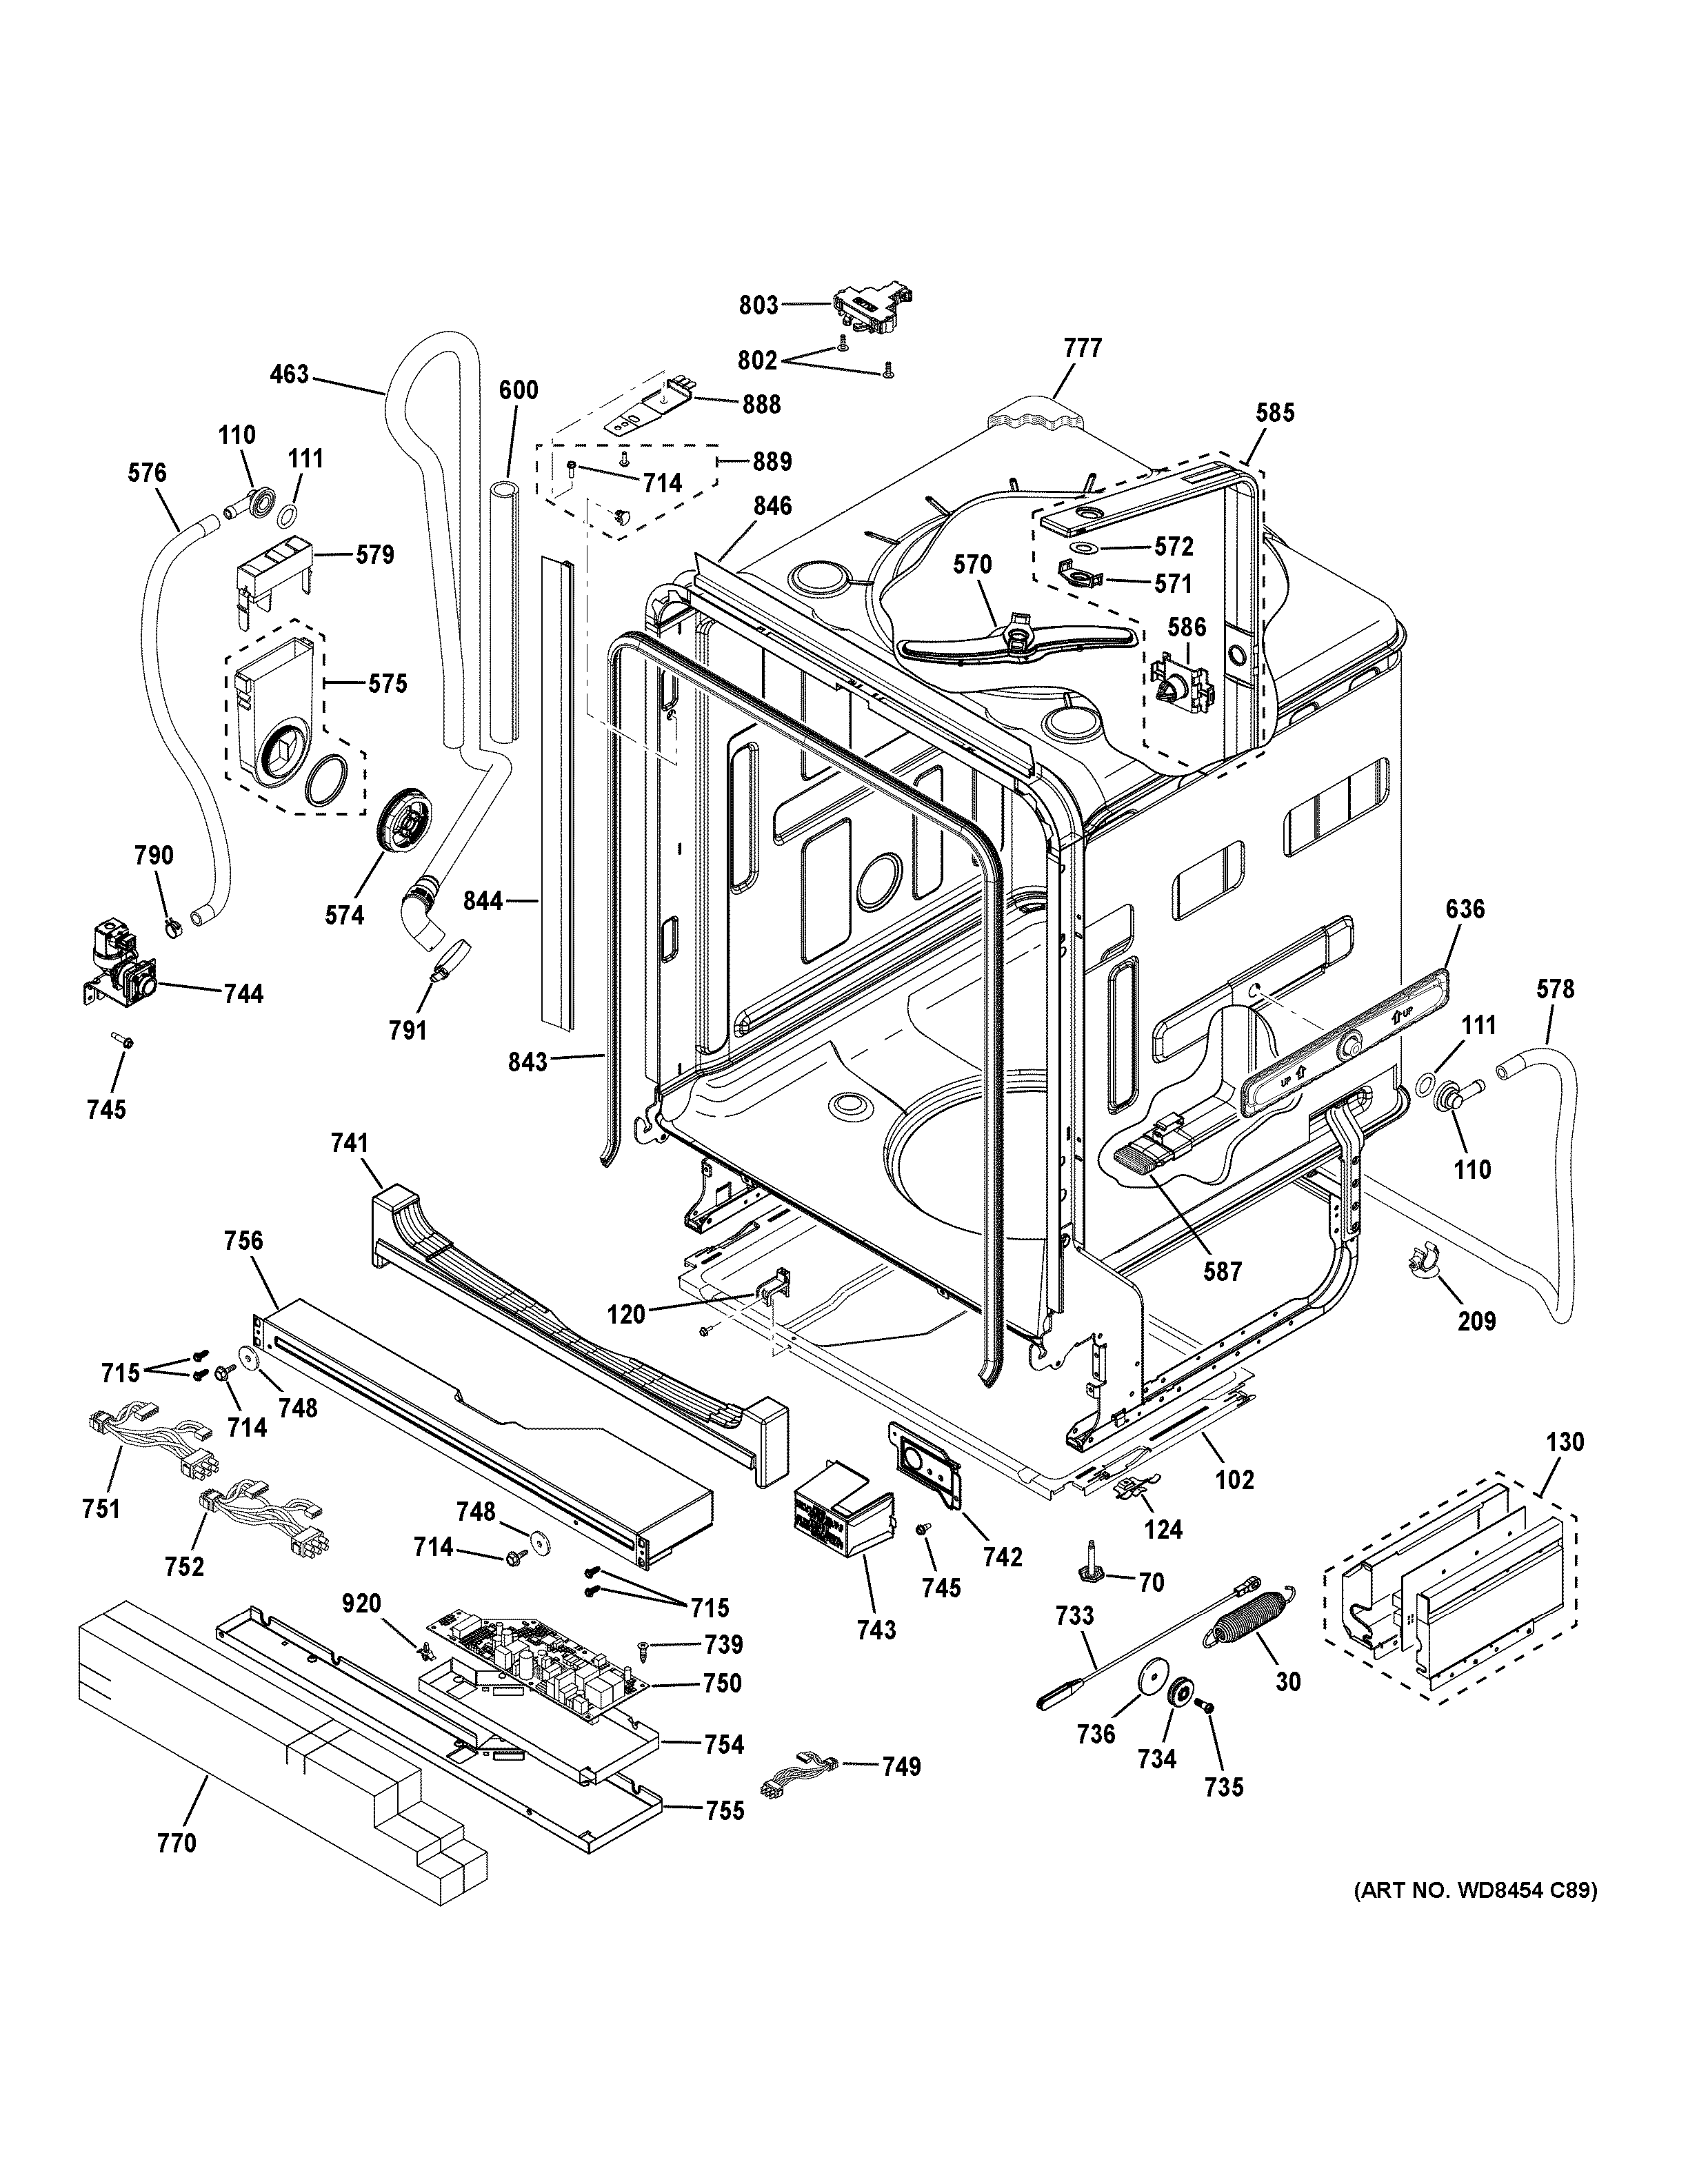 GE PDT750SSF5SS body parts diagram